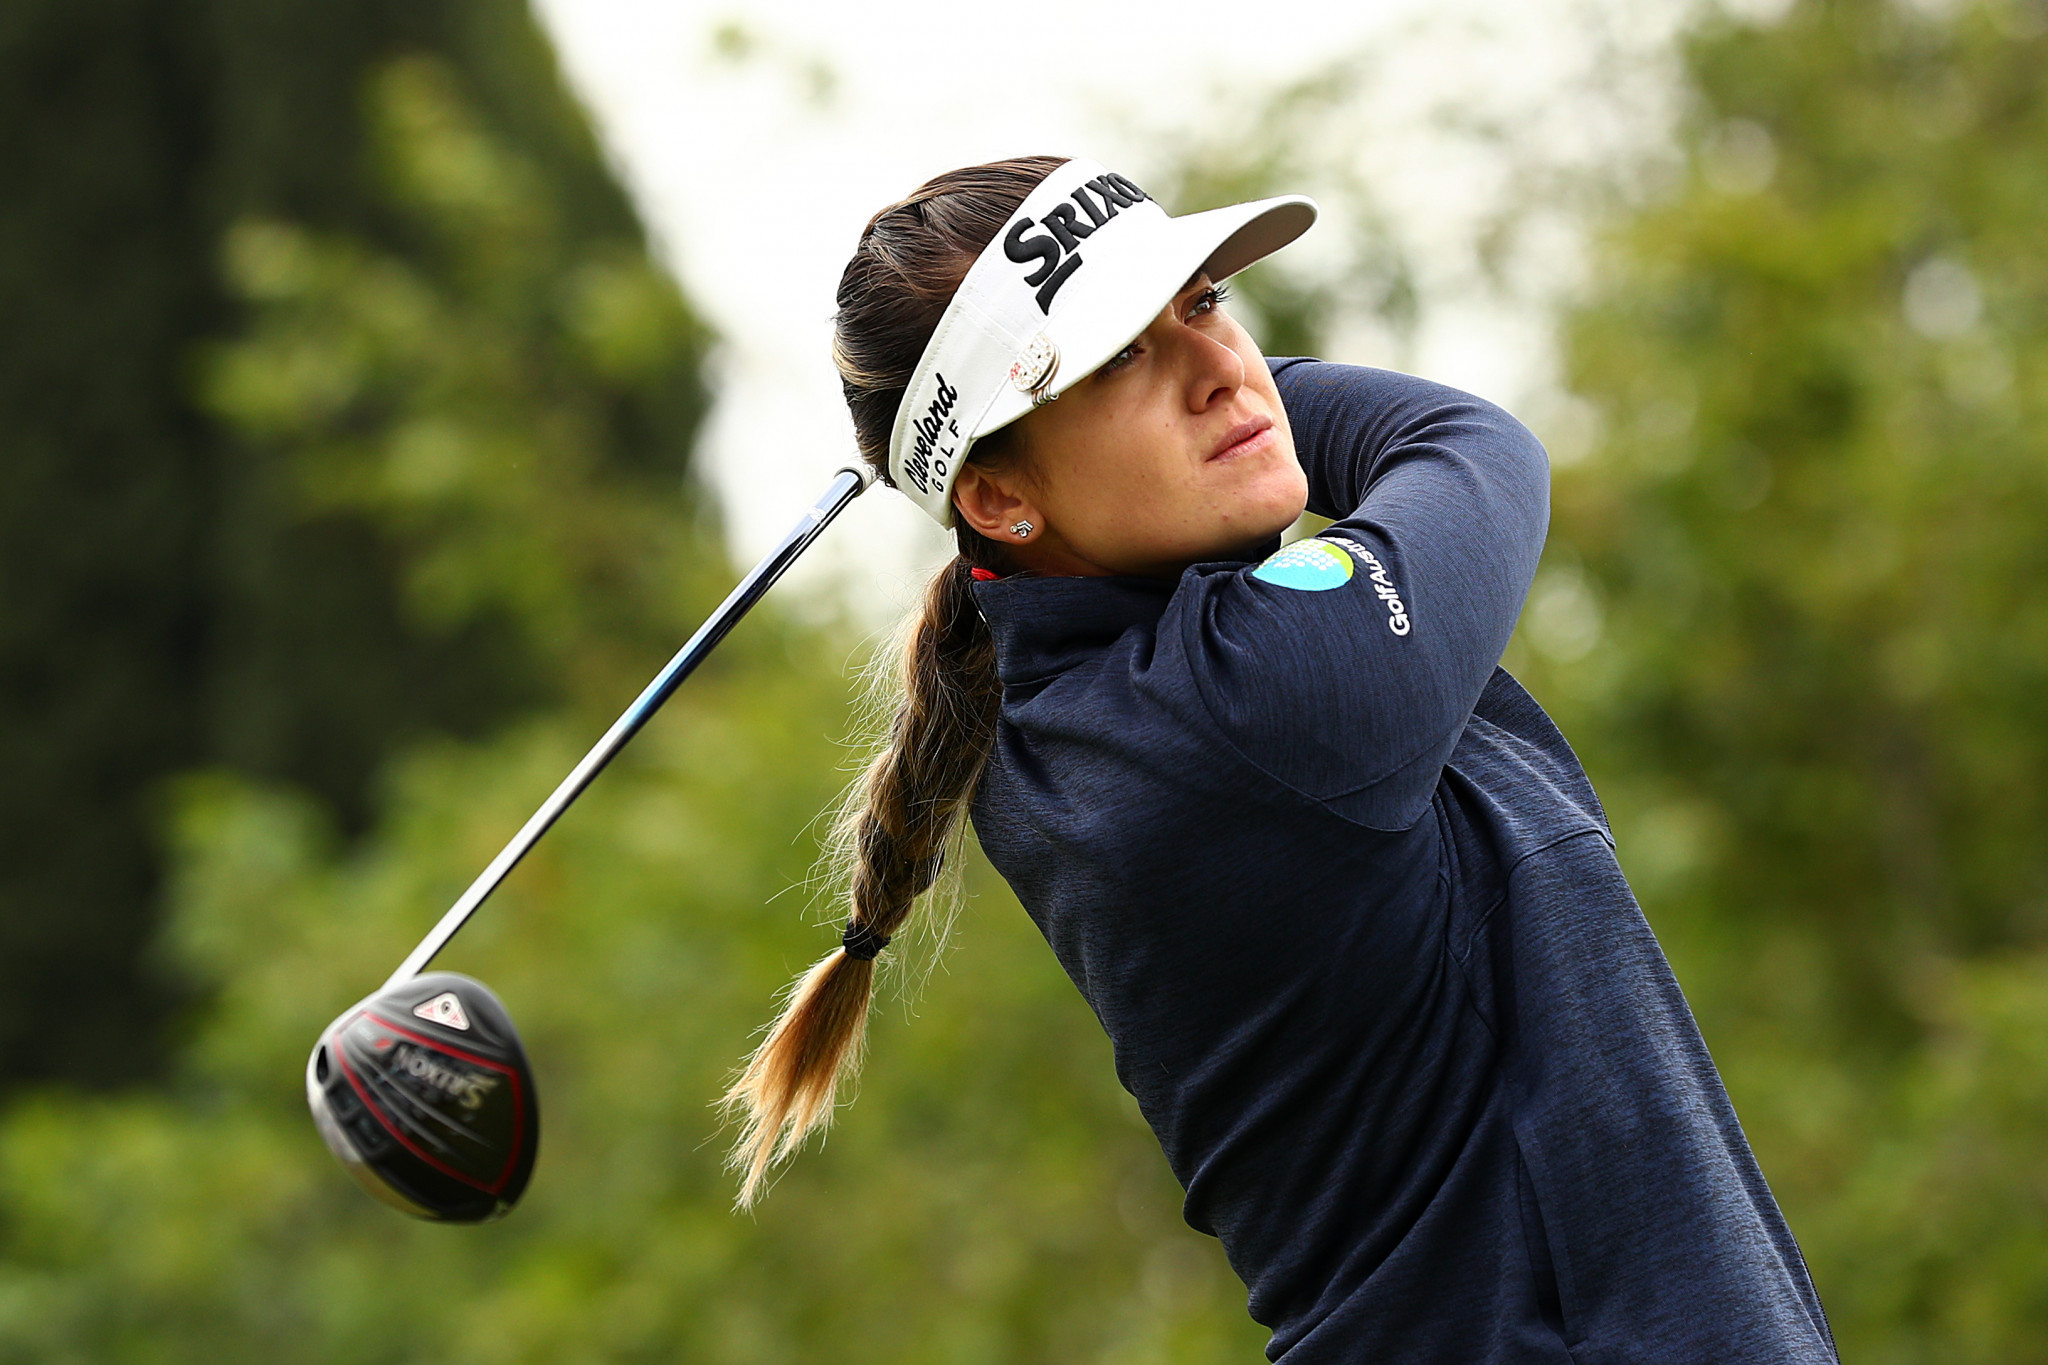 Australia's Green leads by one stroke after wet opening day at Women's PGA Championship